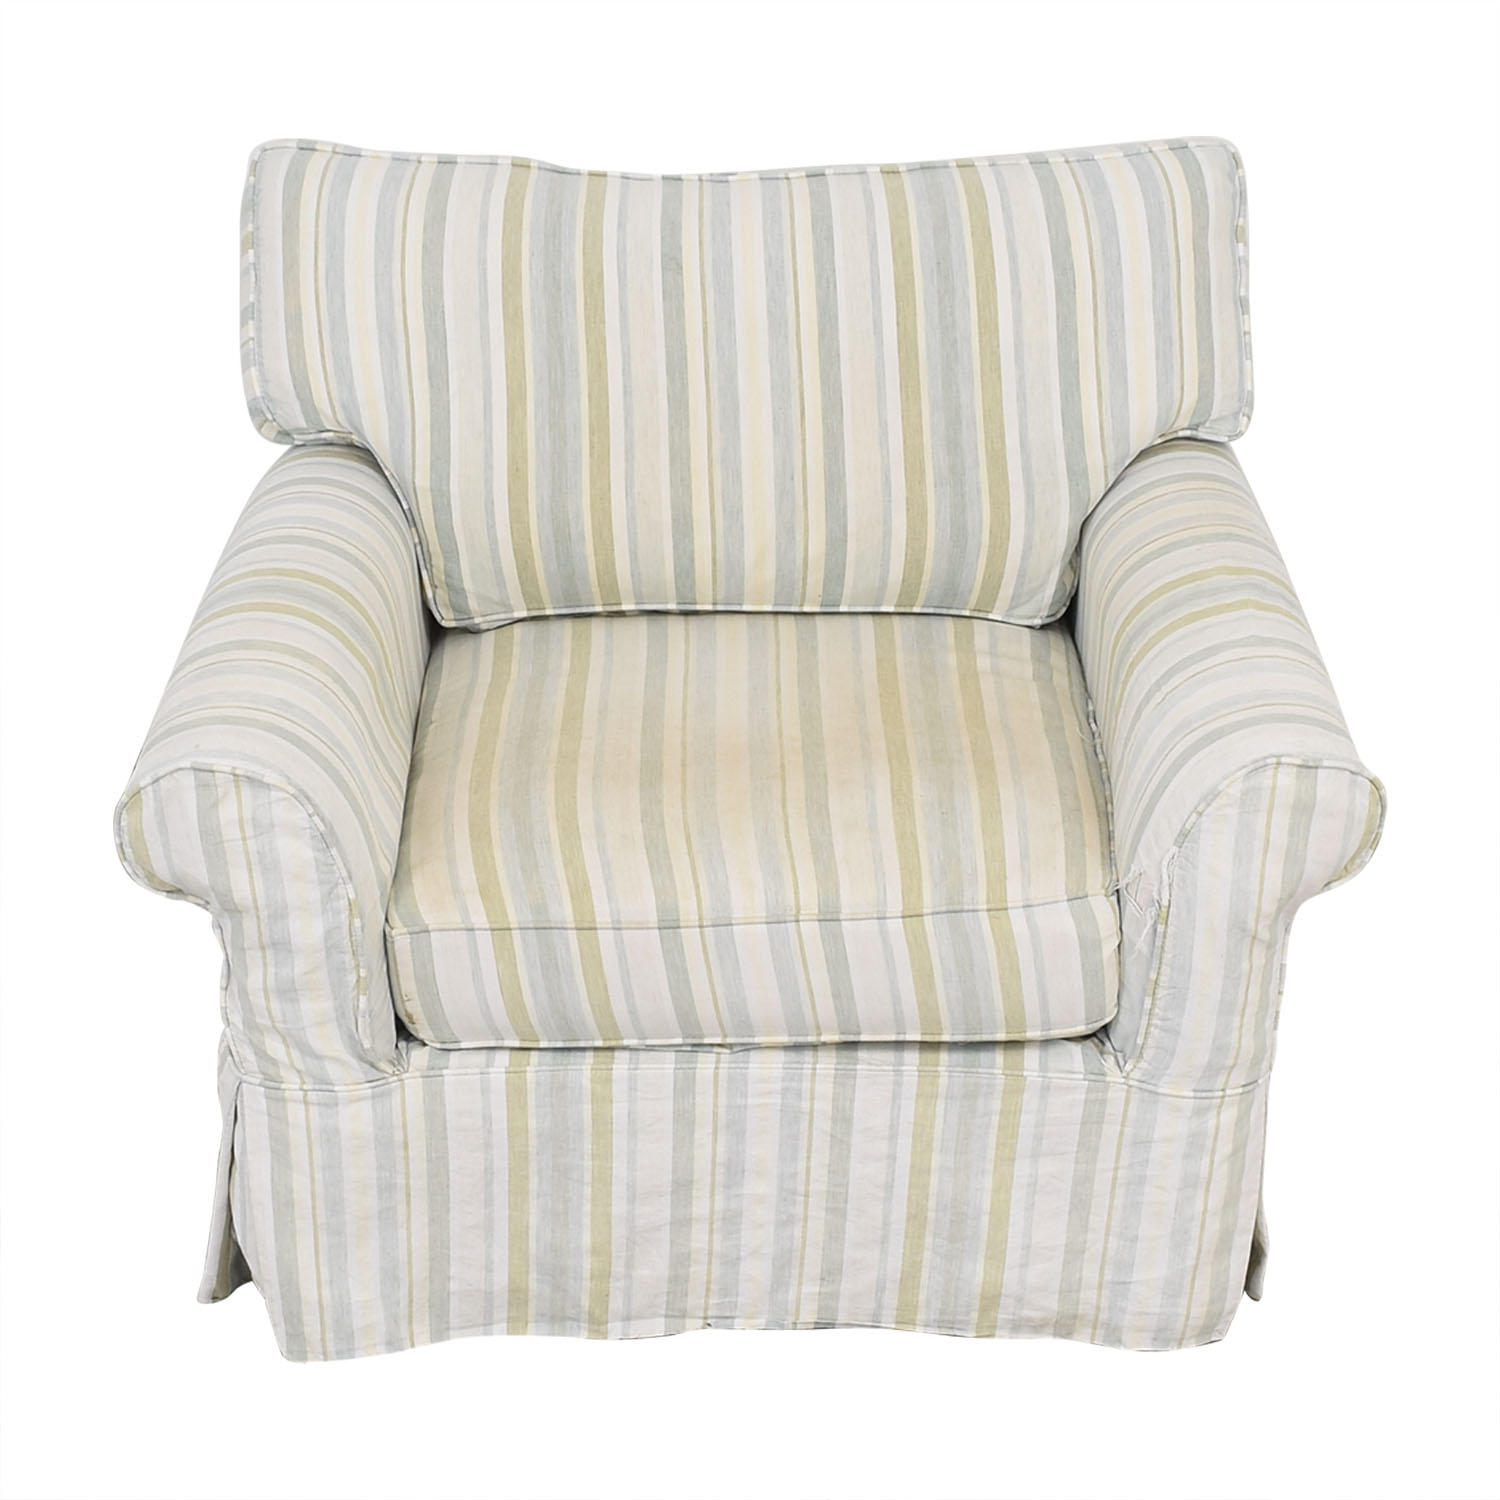 buy Crate & Barrel Slipcovered Accent Chair Crate & Barrel Chairs